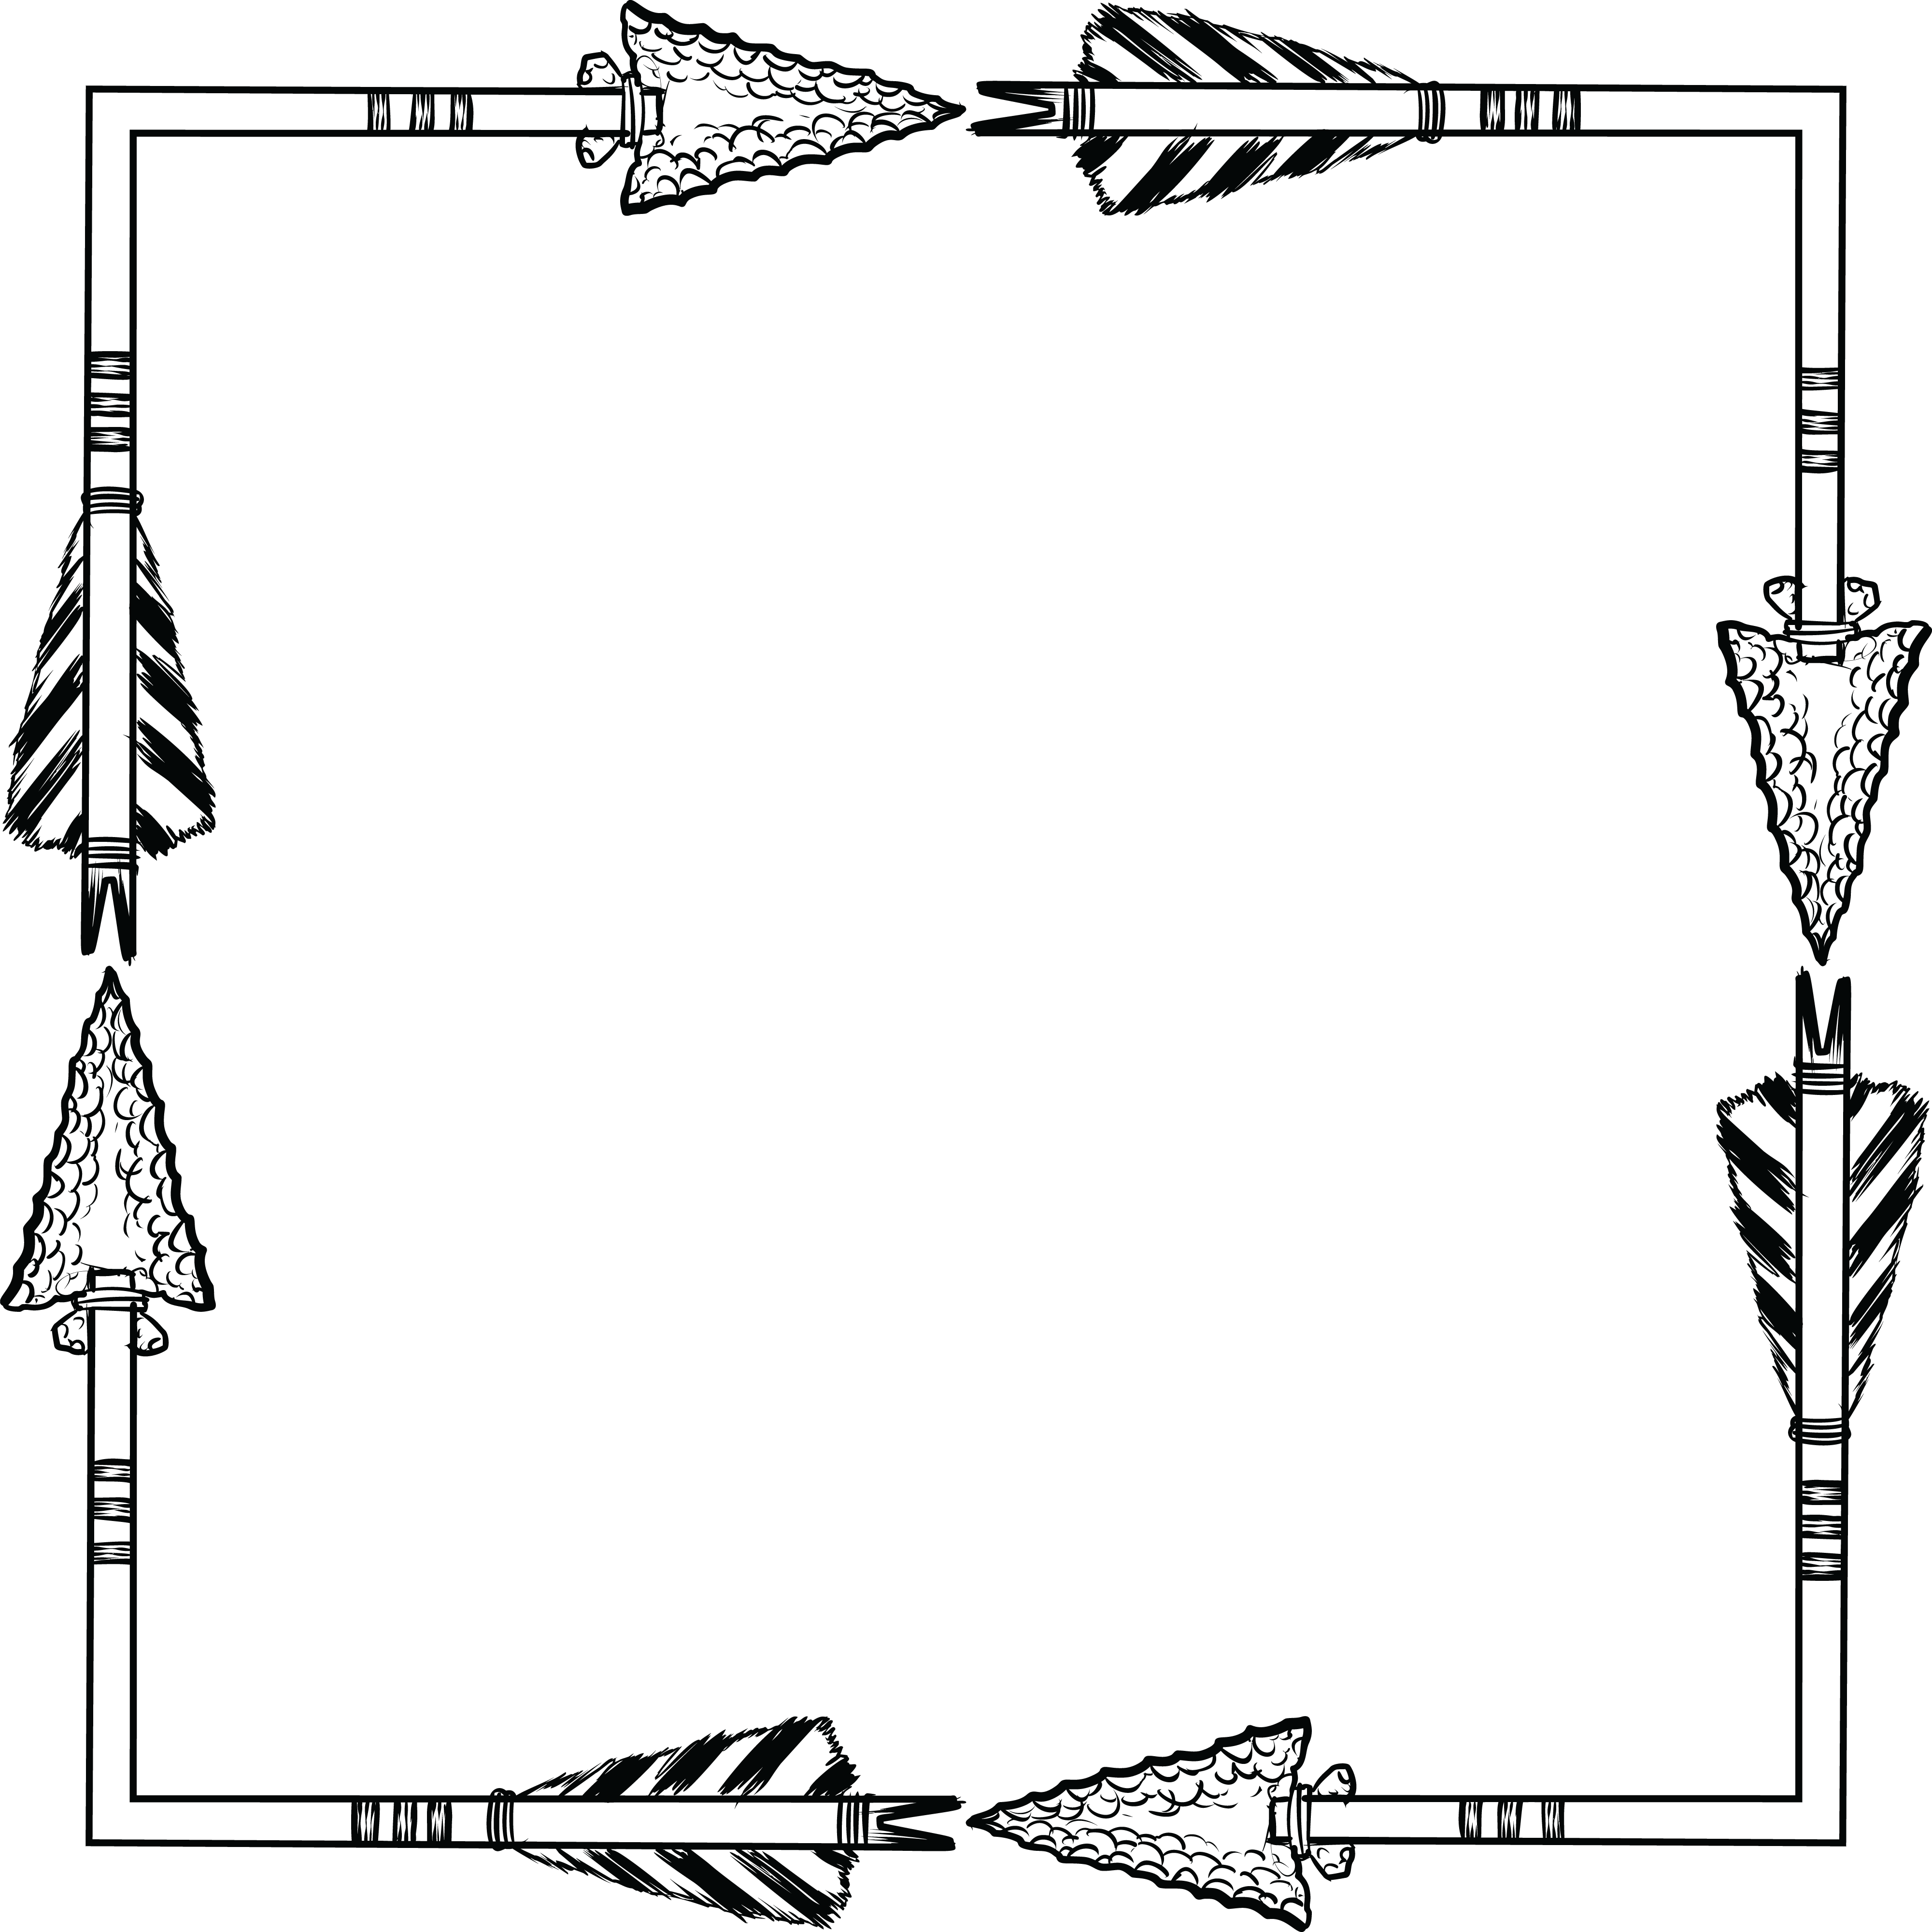 Square Frame Clipart Png.